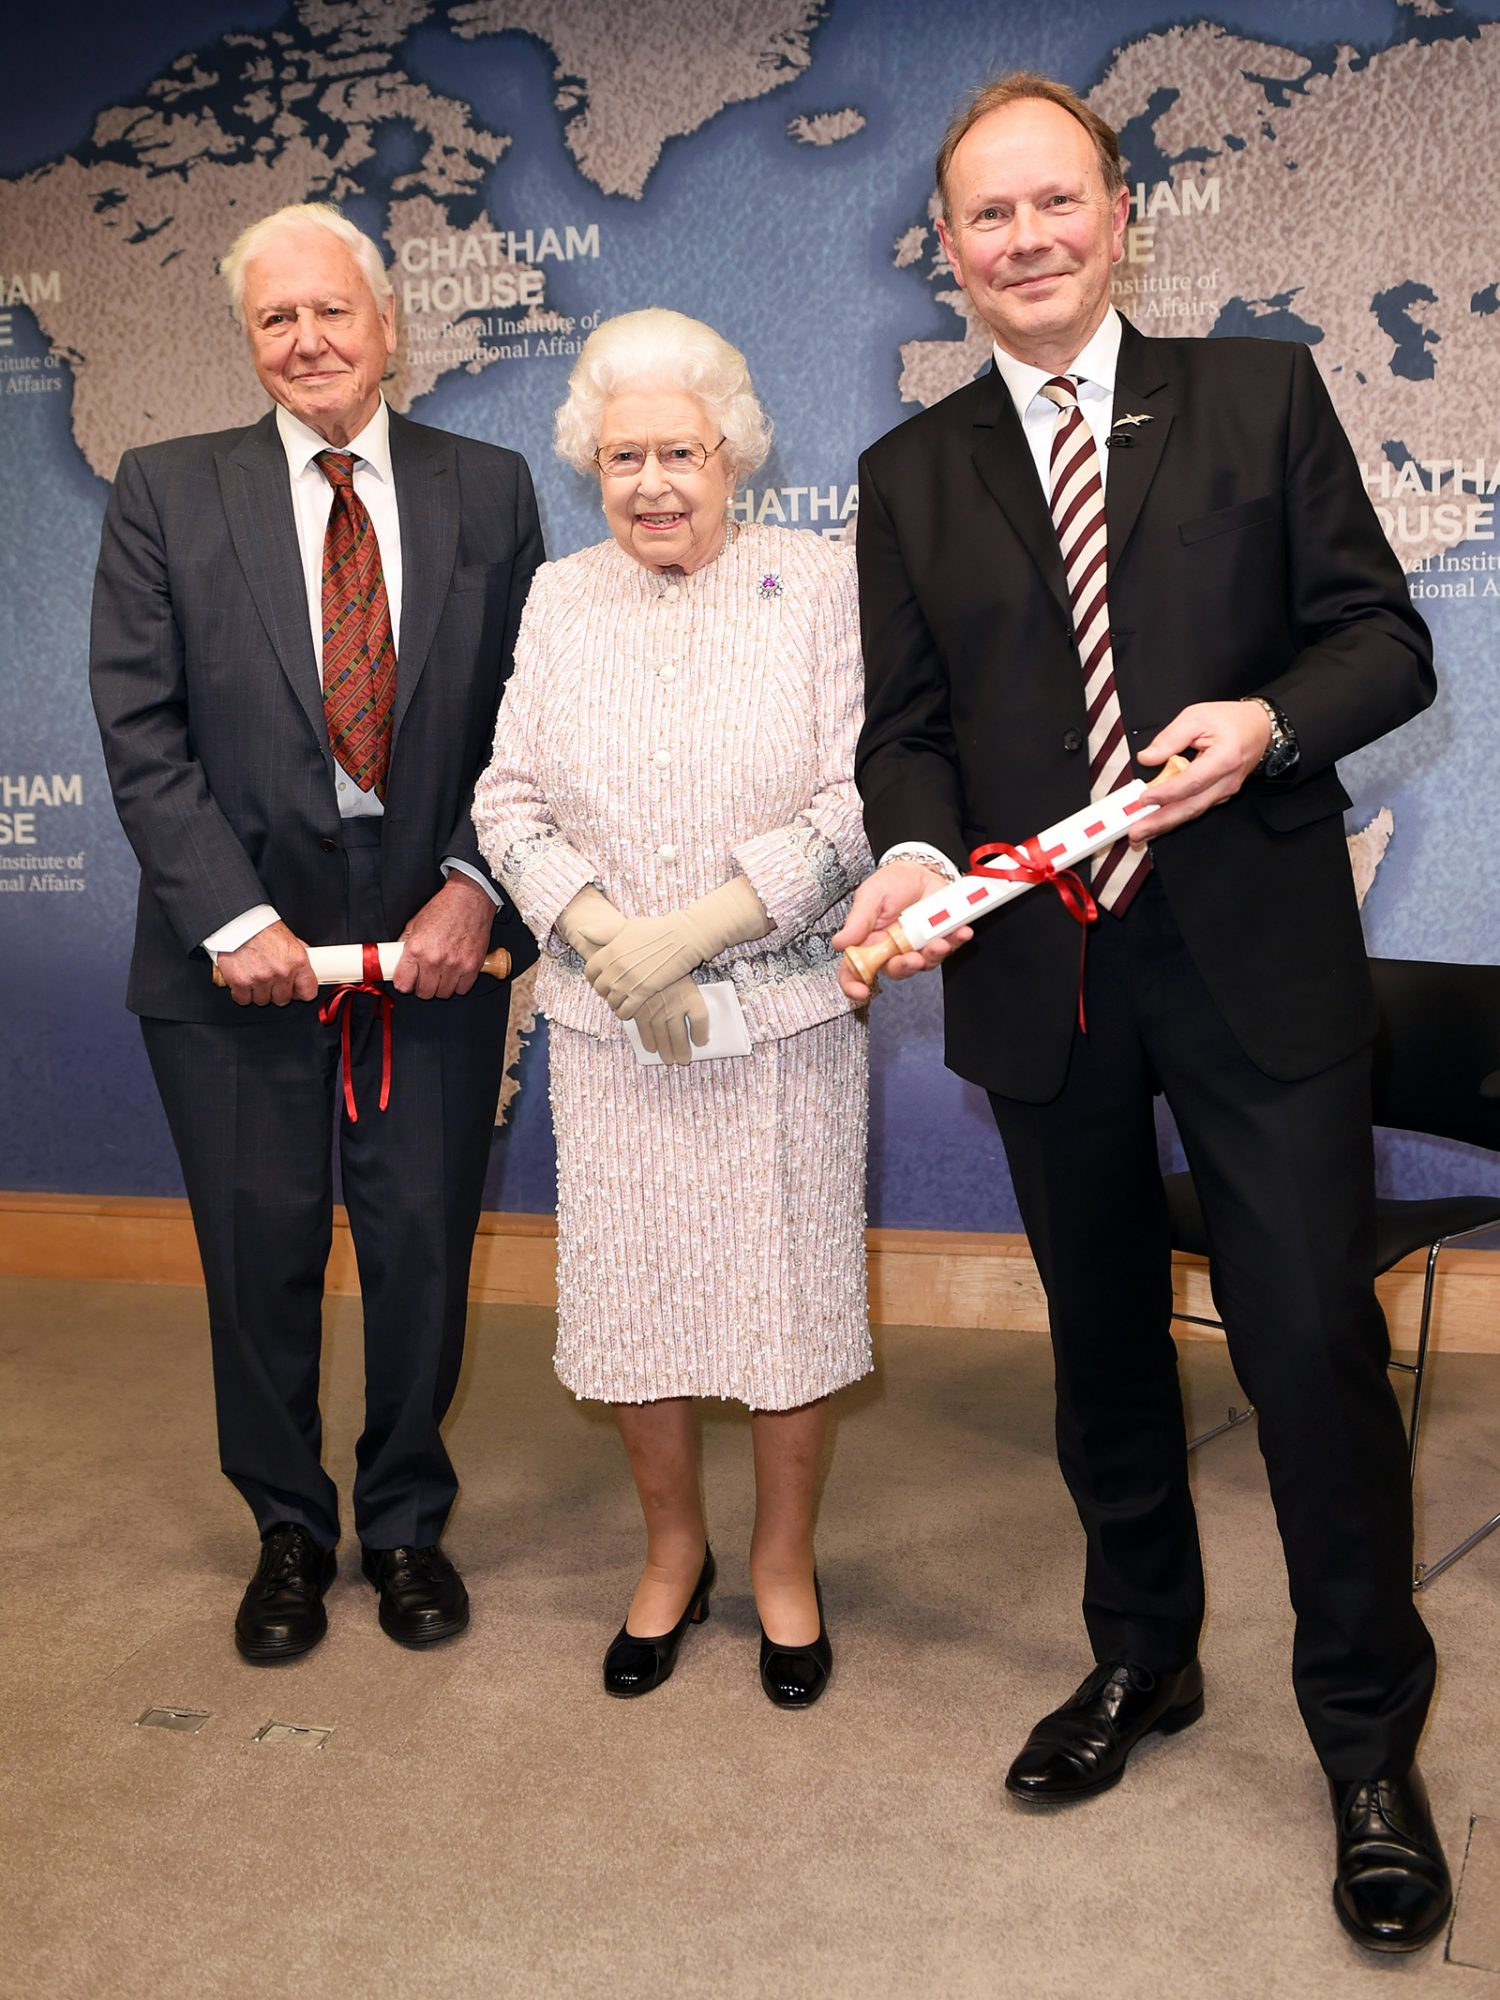 Queen Elizabeth II presents the Chatham House Prize 2019 to Sir David Attenborough (L) and Julian Hector, Head of the BBC Natural History Unit at the Royal institute of International Affairs, Chatham House on November 20, 2019 in London Colney, England